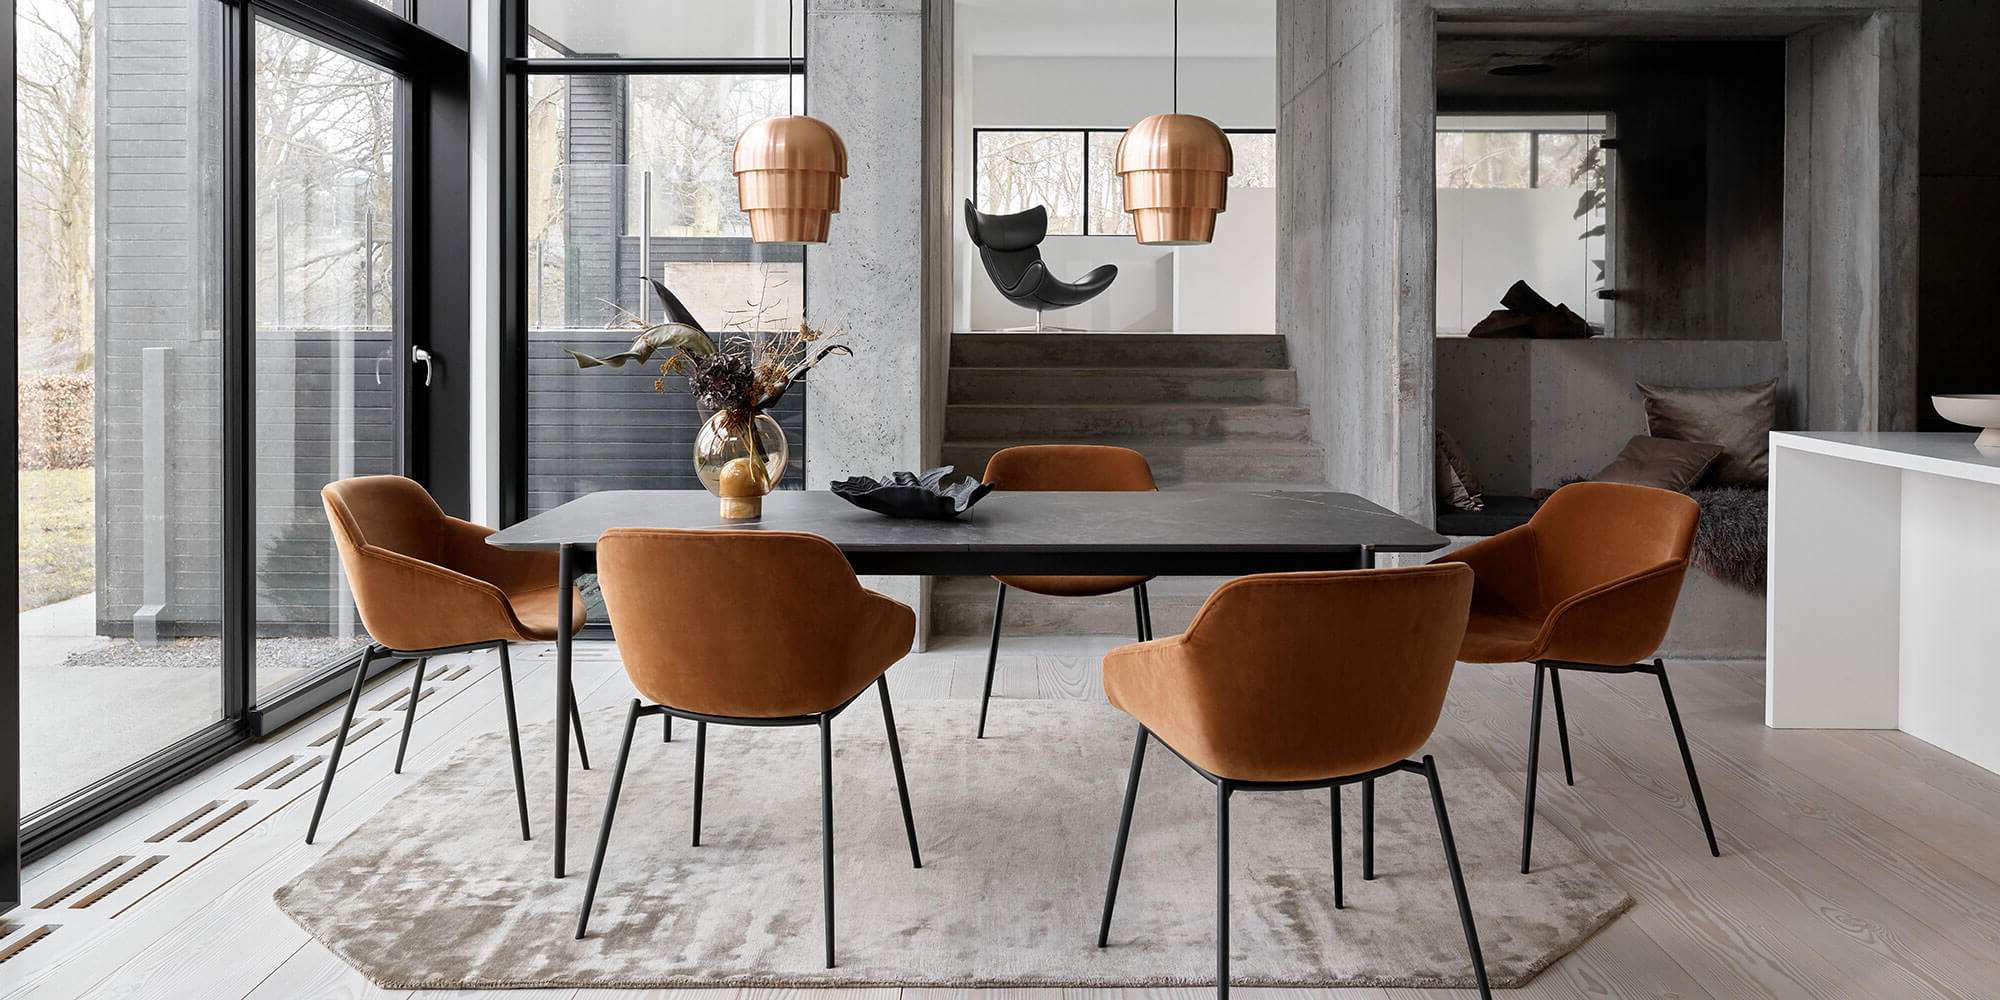 Transitional 8 Seating Rectangular Helsinki Dining Tables Inside Latest Contemporary Danish Furniture (View 25 of 30)